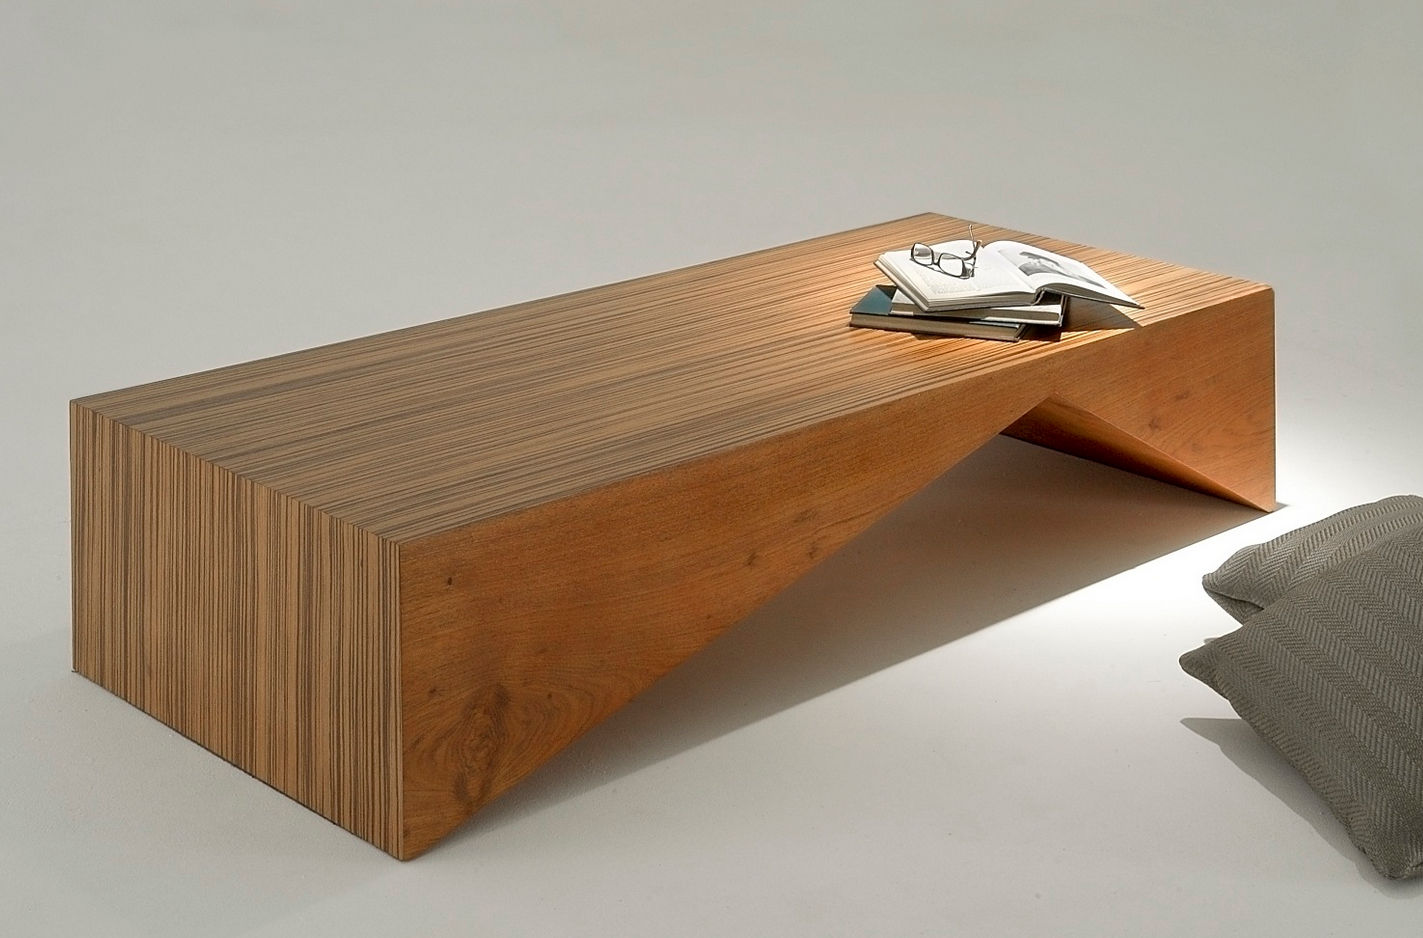 Furniture Design Ideas Muebles De Madera